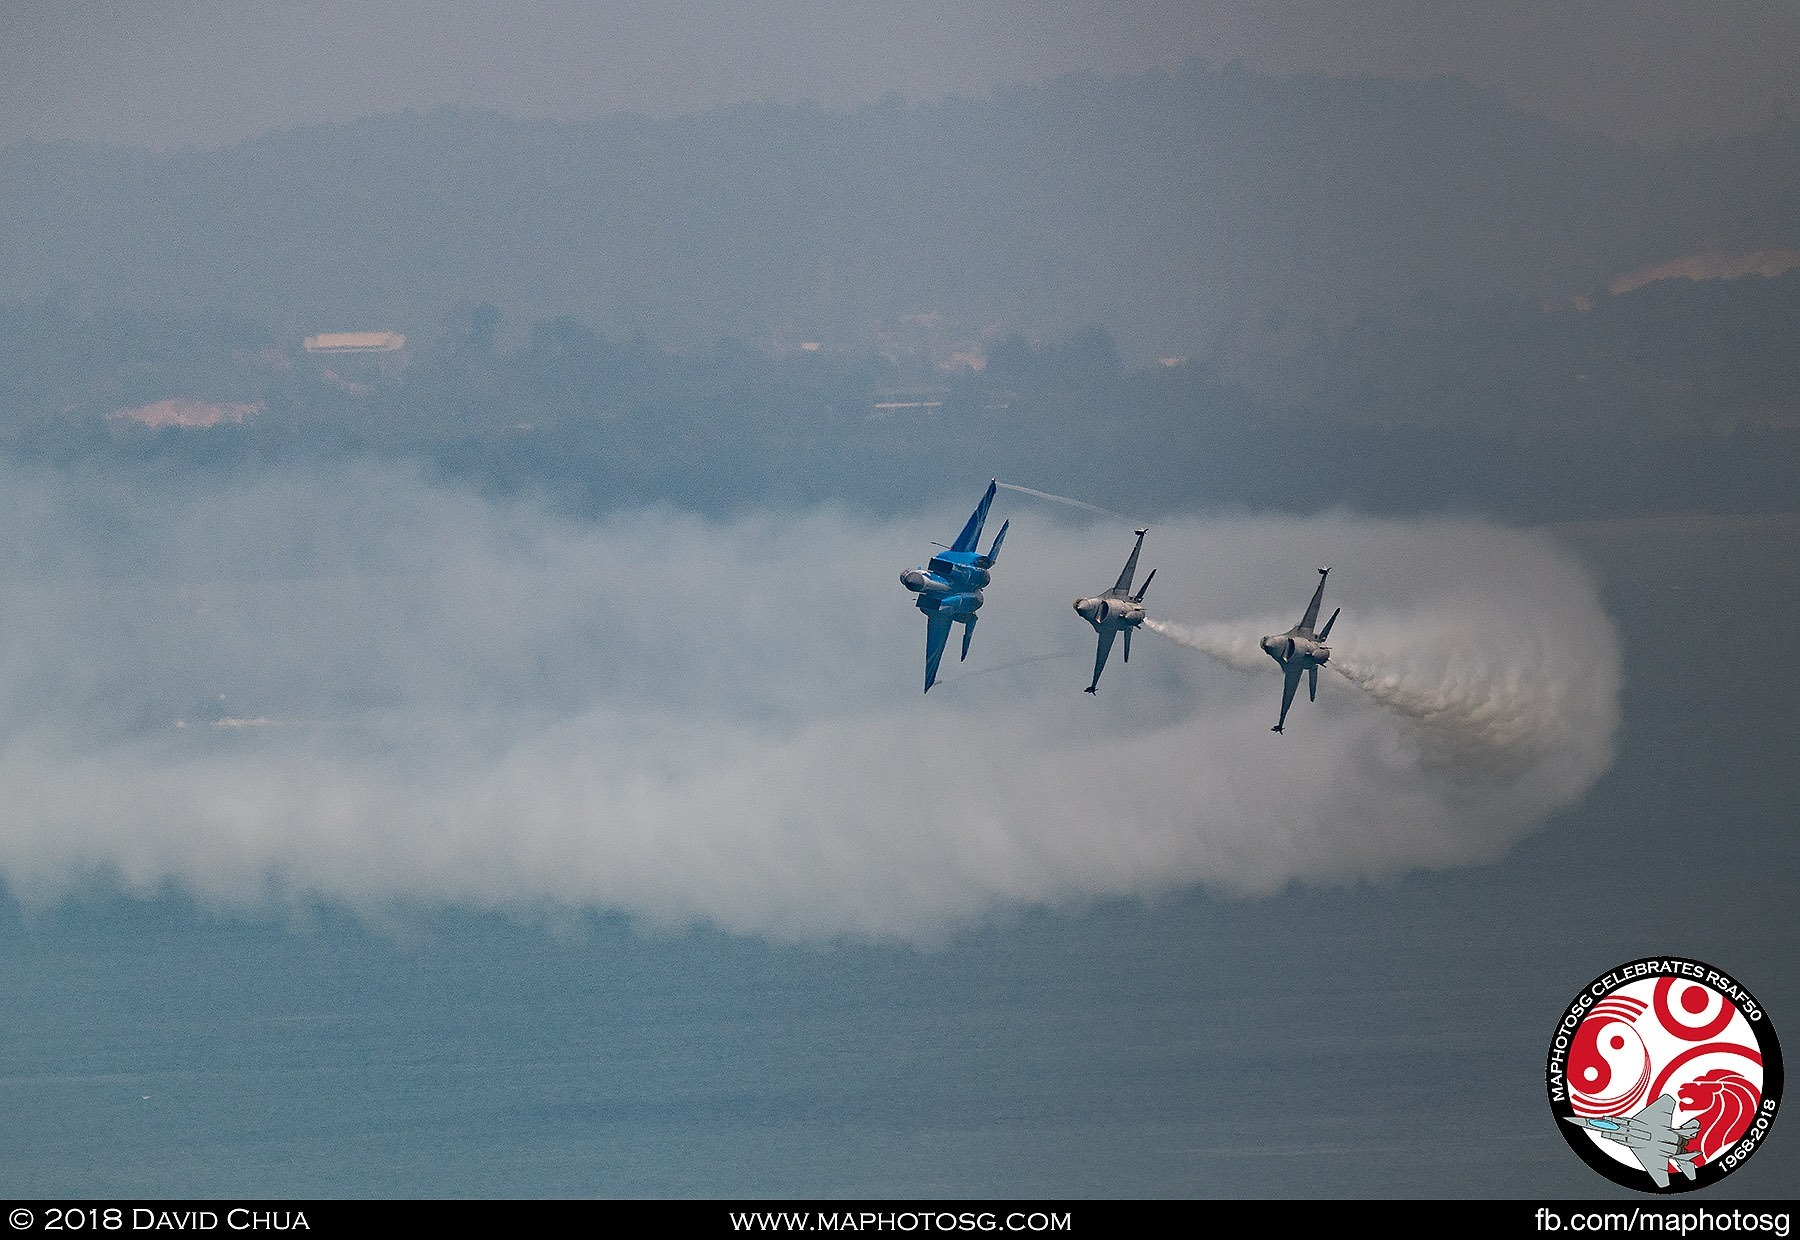 Spear – The F-15SG and F-16Cs enter show centre in the spear formation.